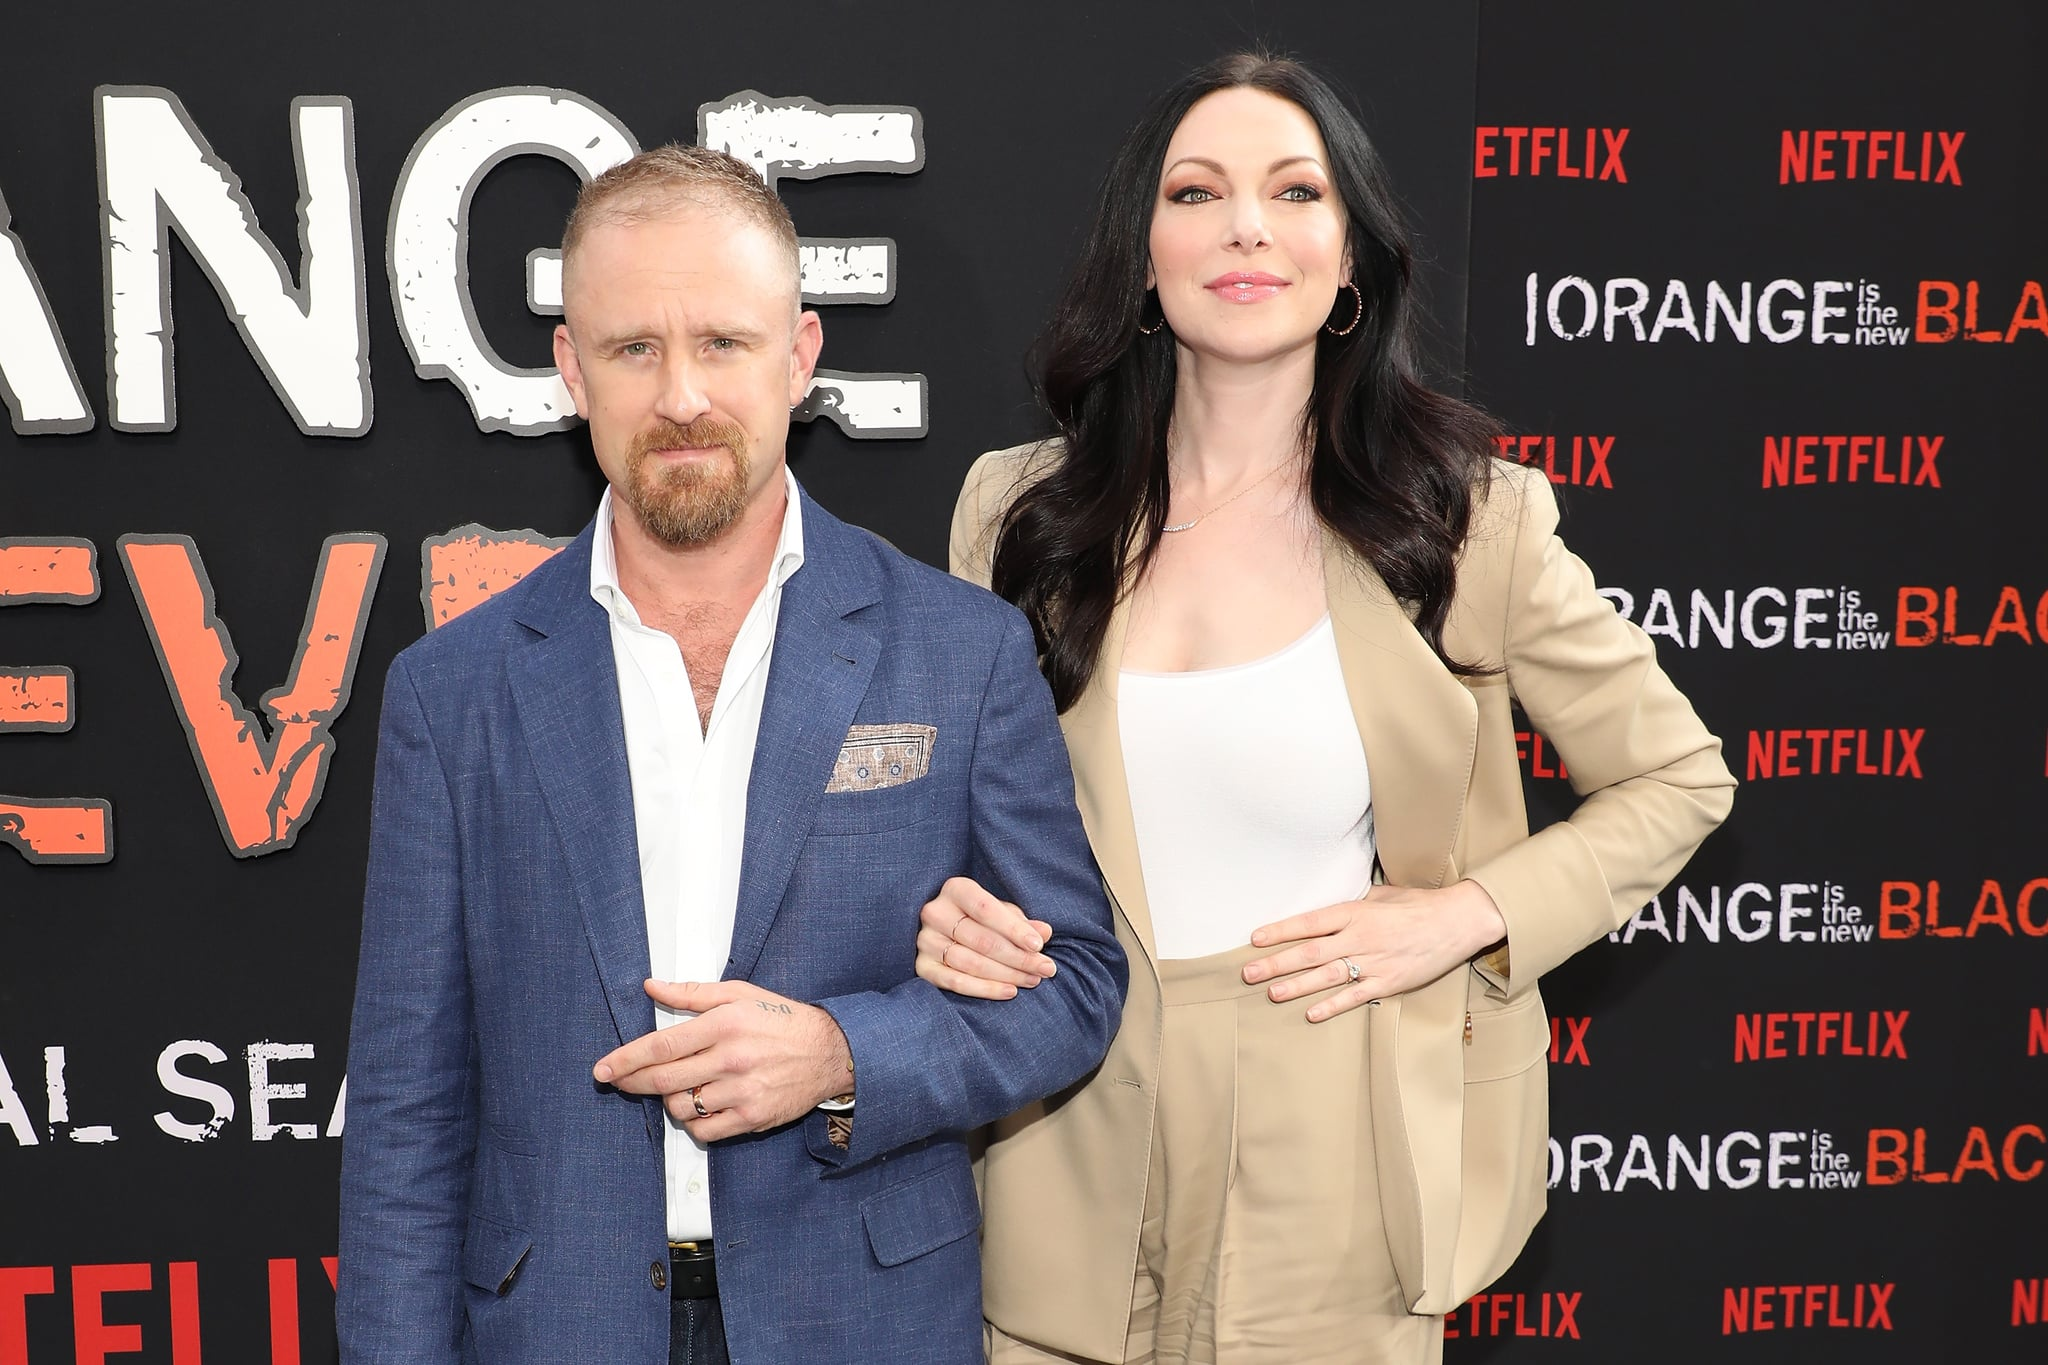 NEW YORK, NEW YORK - JULY 25: Ben Foster and Laura Prepon attend the